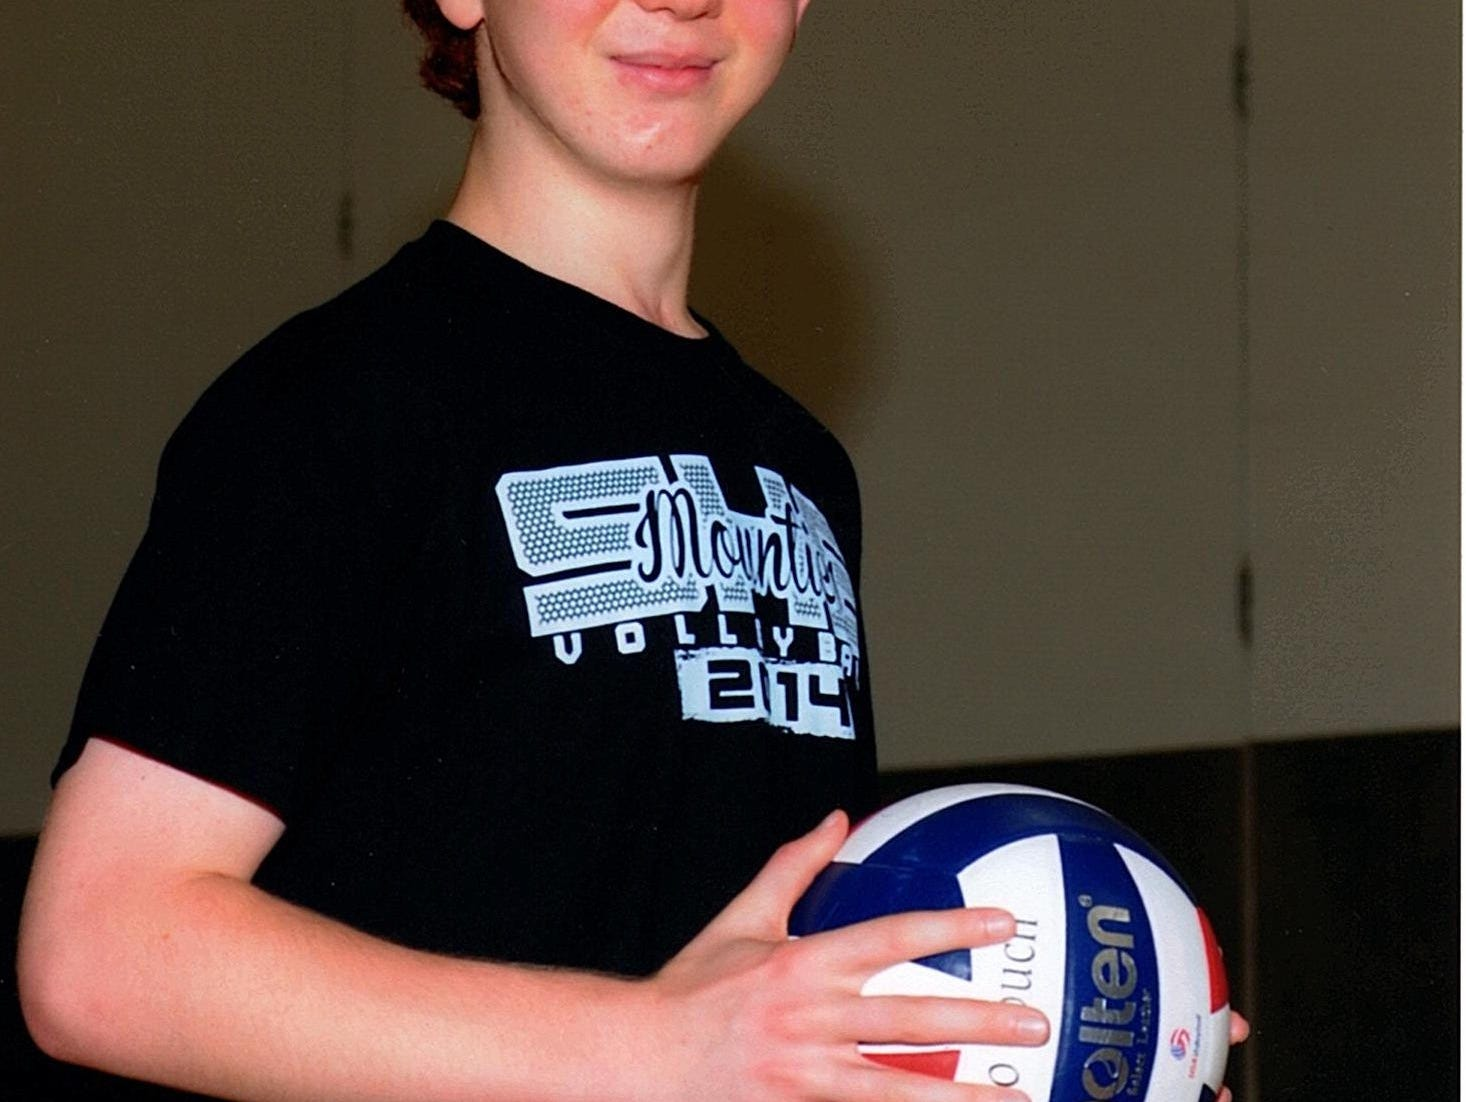 Suffern boys volleyball's Cameron Martel is this week's Journal News Rockland Scholar-Athlete of the Week